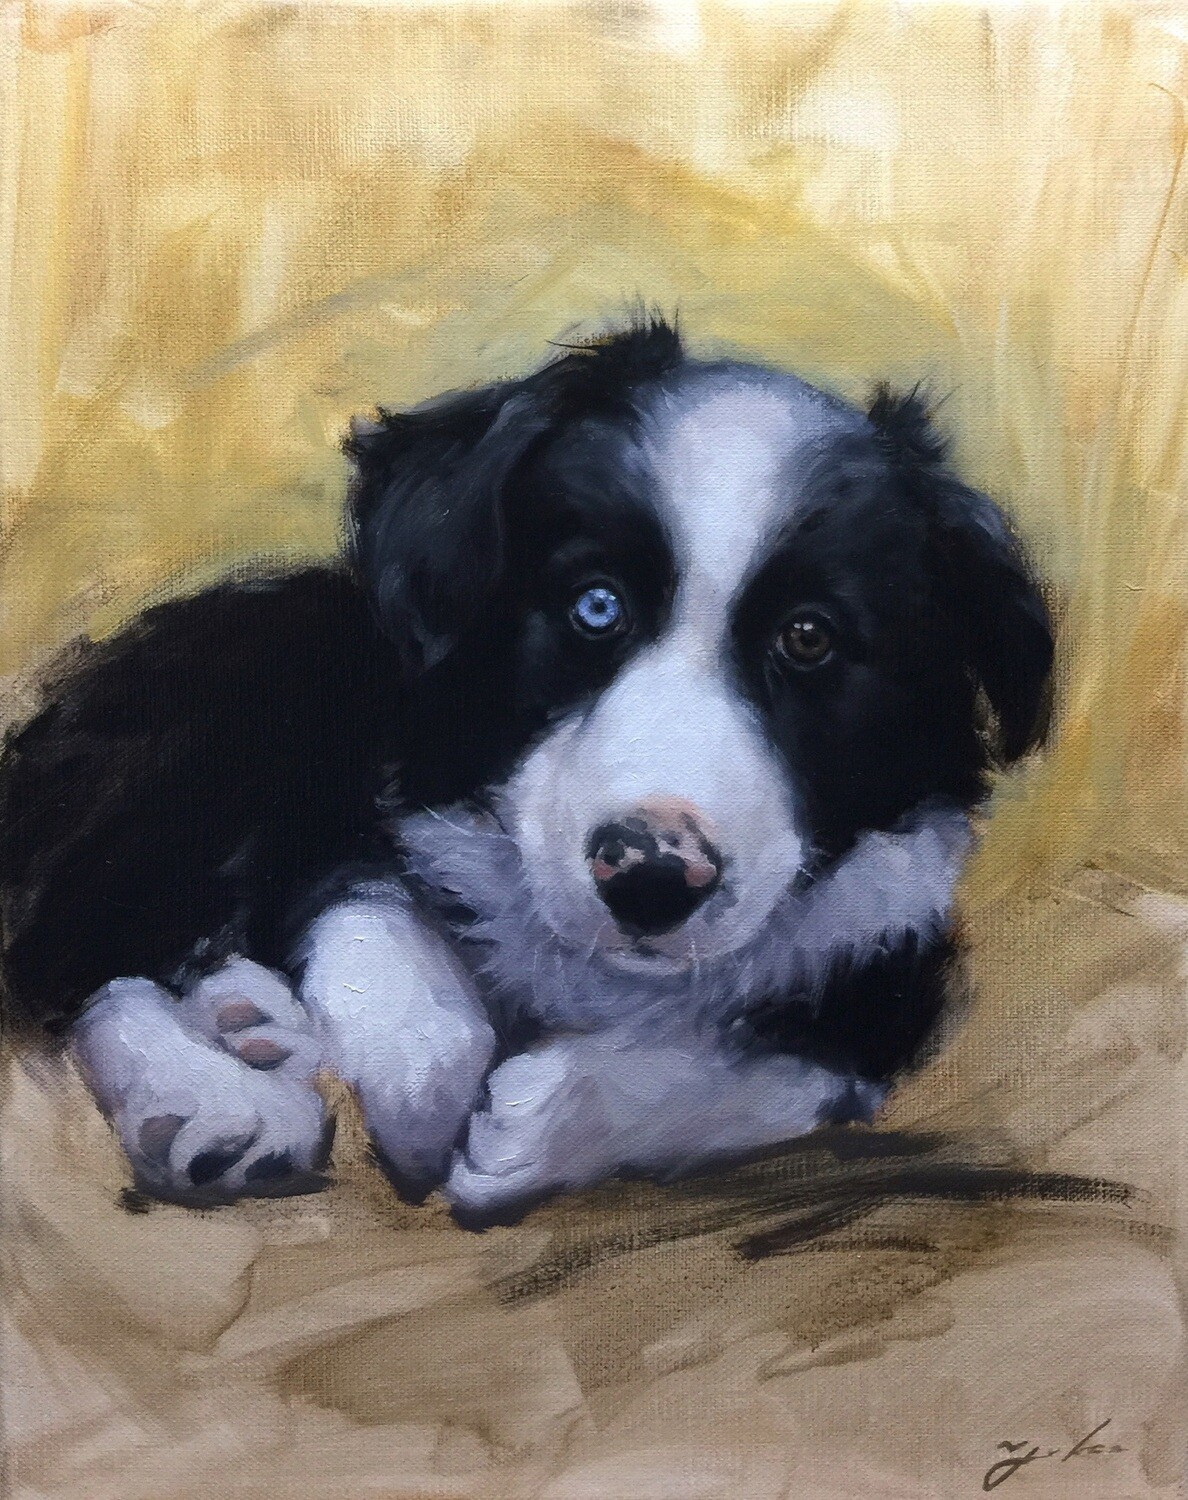 Pet Custom Oil Portrait Painting 8x10 inch from